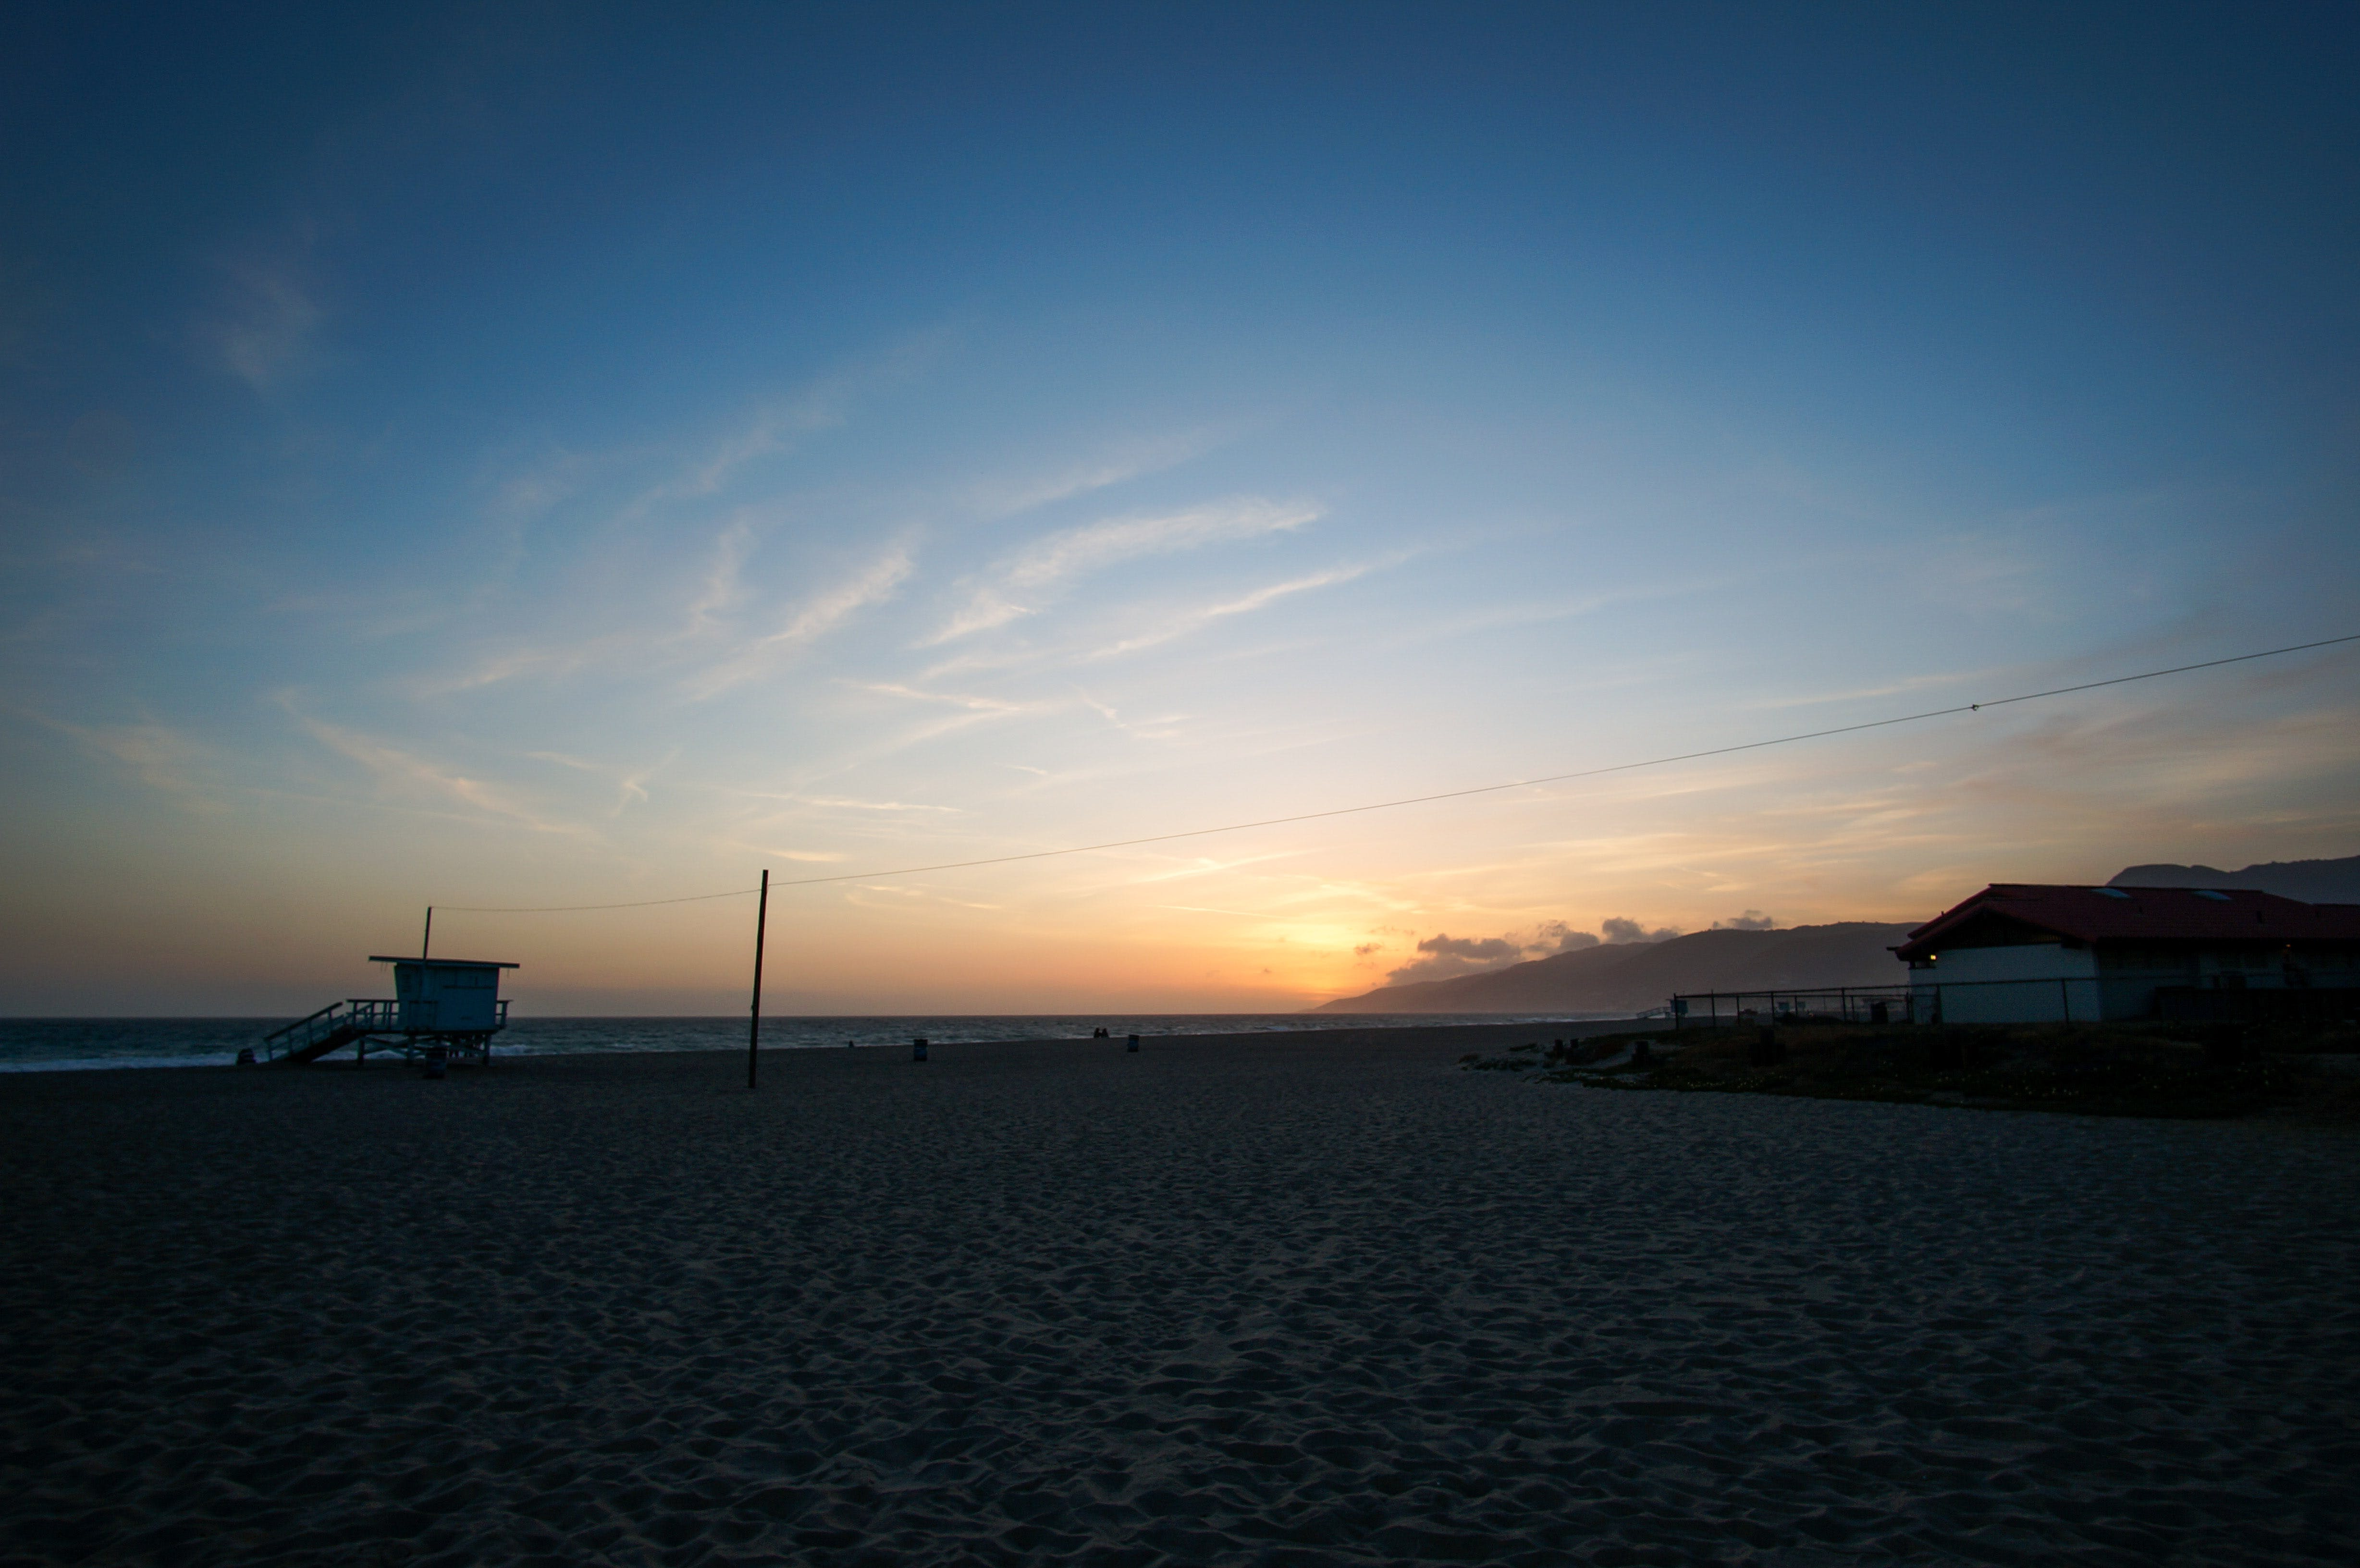 Seashore Under Blue Sky With Brown Clouds during Sunrise